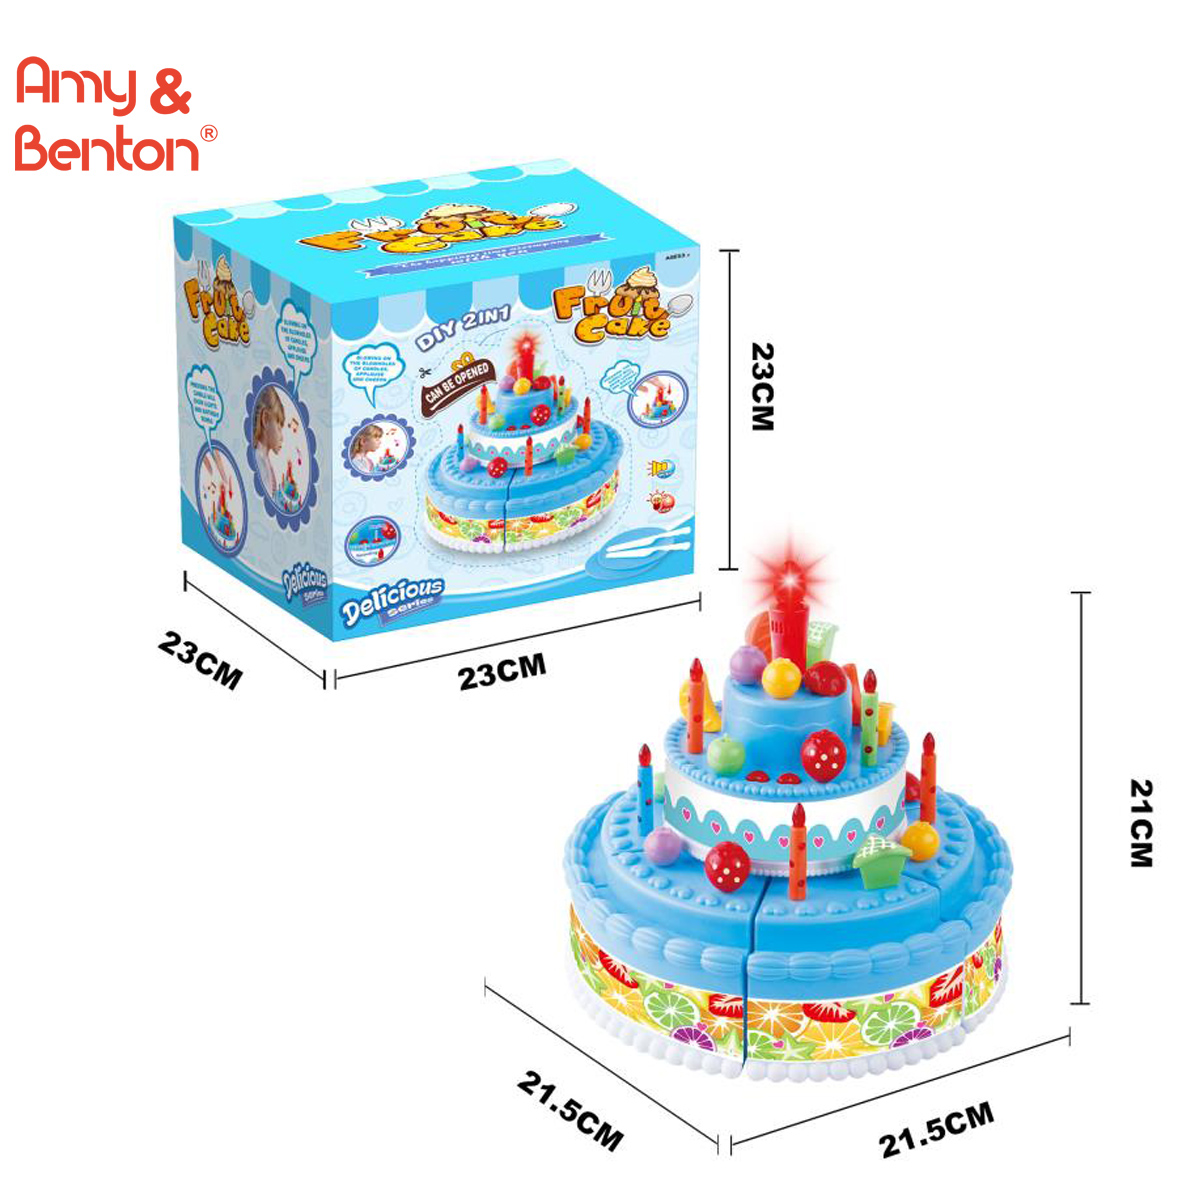 Kids Birthday Cake Toy For Baby Toddlers With Counting Candles And Music Best Gift Toys 1 5 Years Old Boys Girls